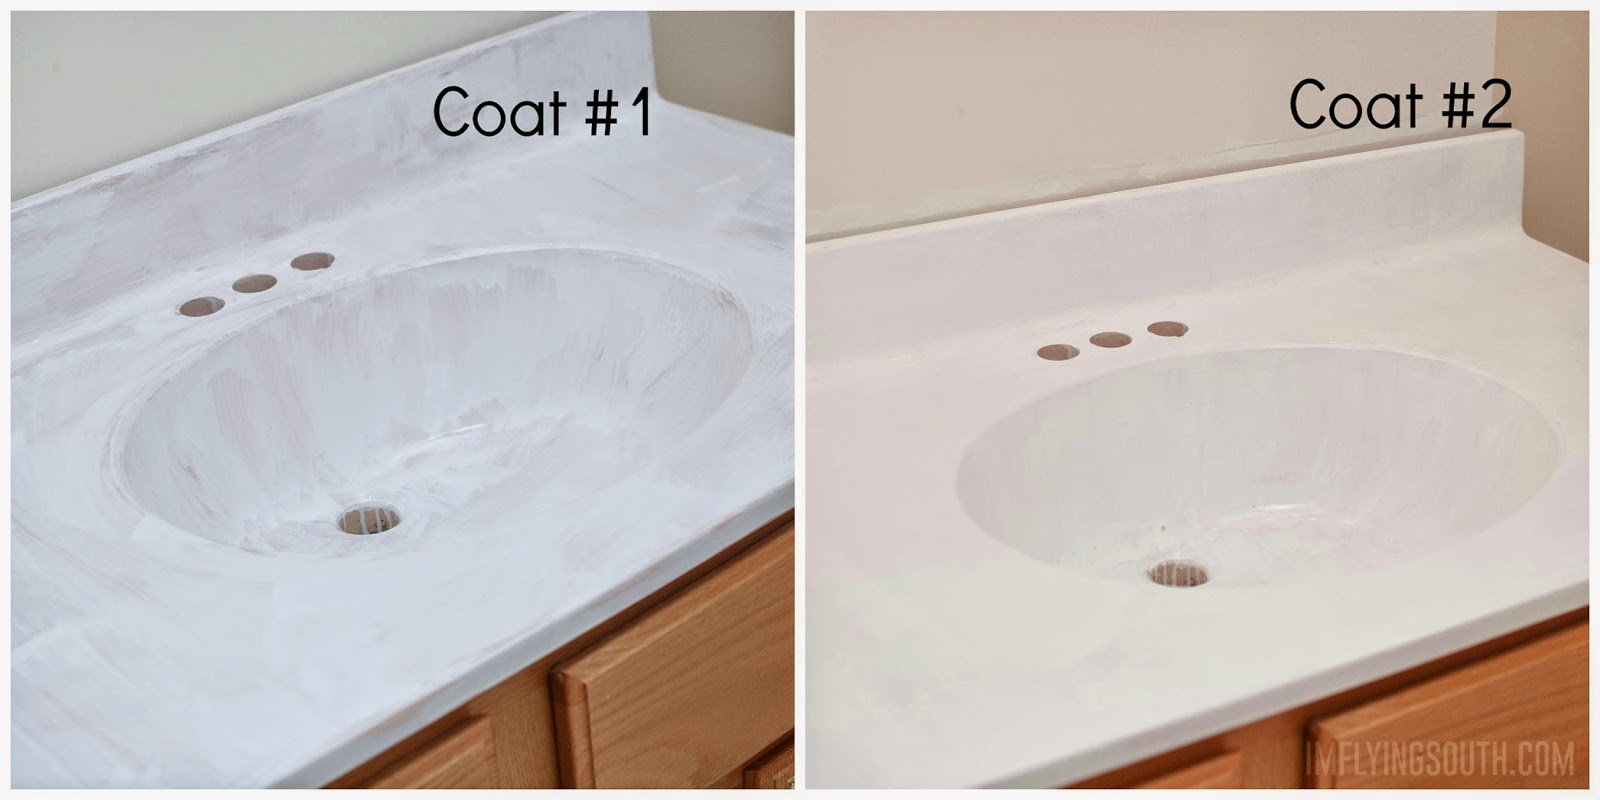 Great Painted Bathroom Sink And Countertop Process   Iu0027m Flying South Featured On  @Remodelaholic